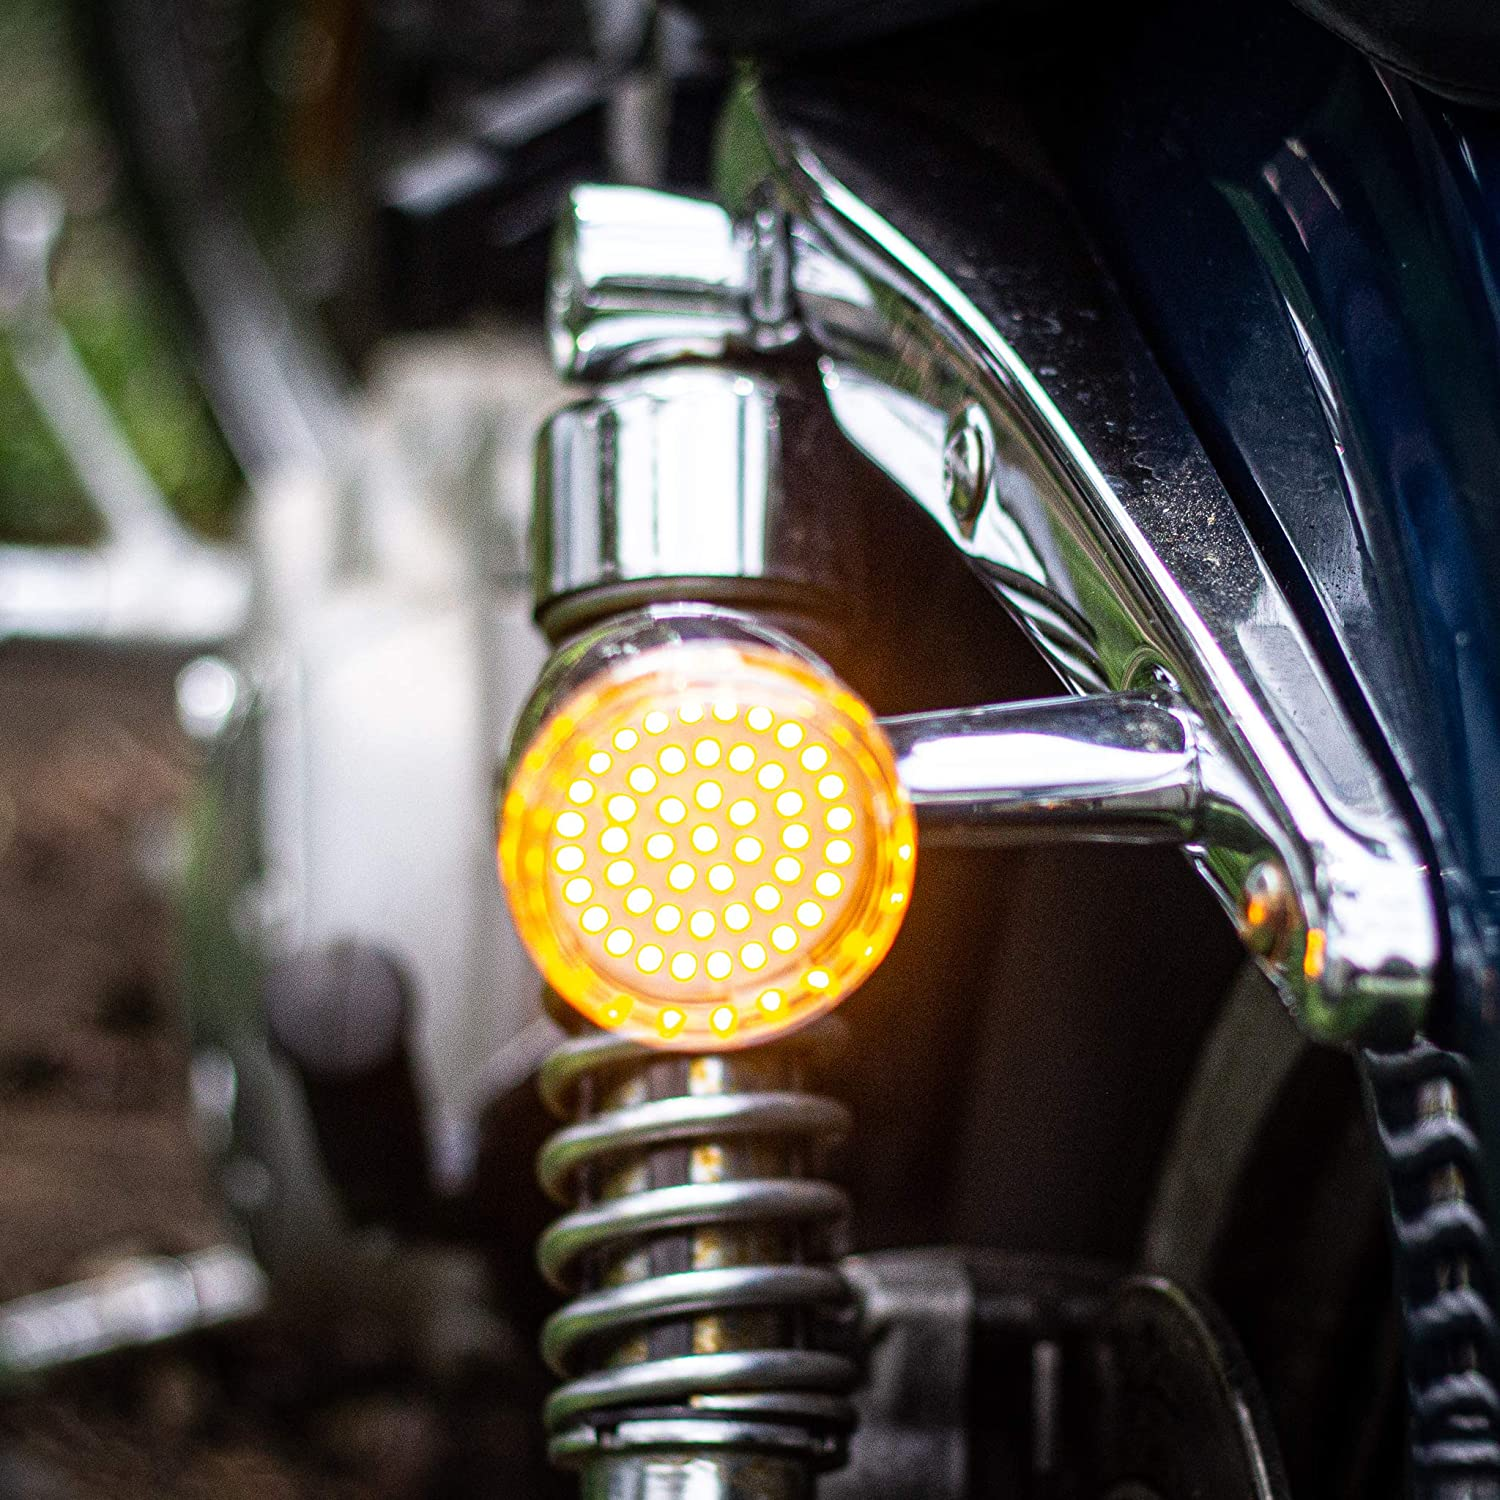 B07CT4T2N6 Eagle Lights LED Generation II Turn Signals with White Running Lights (Front (1157) and Rear Amber (1156) LED Turn Signal Kit, Add Smoked Lenses) for Harley Davidson 71QlTcmhlYL